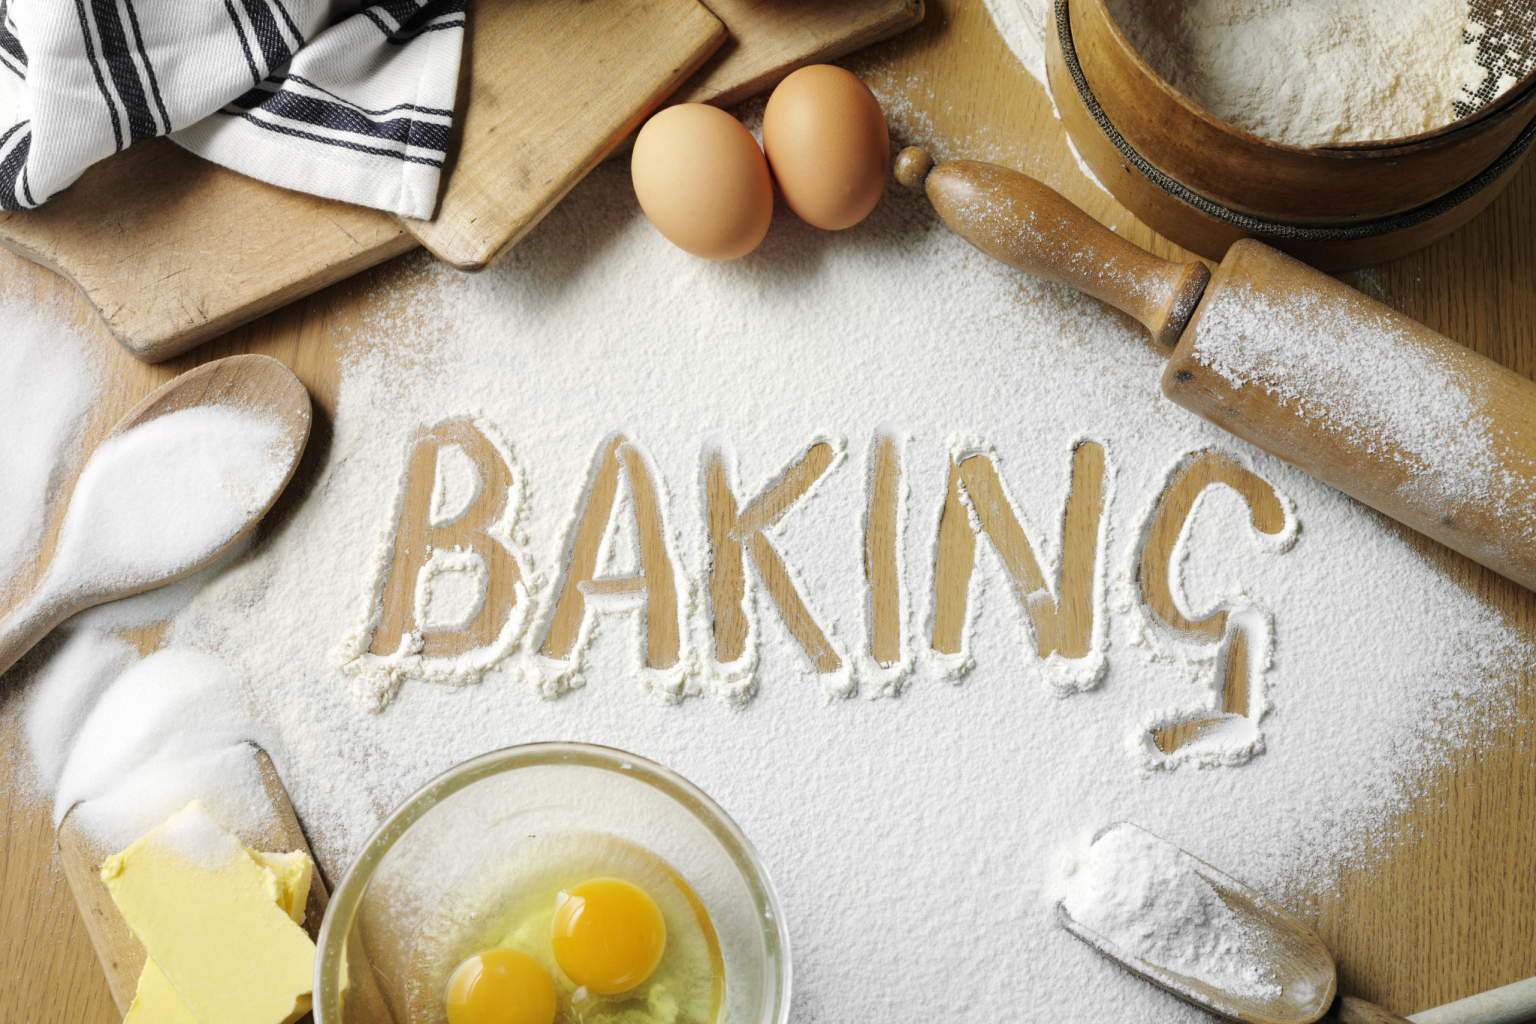 Baking equipment with 'Baking' calved into flour